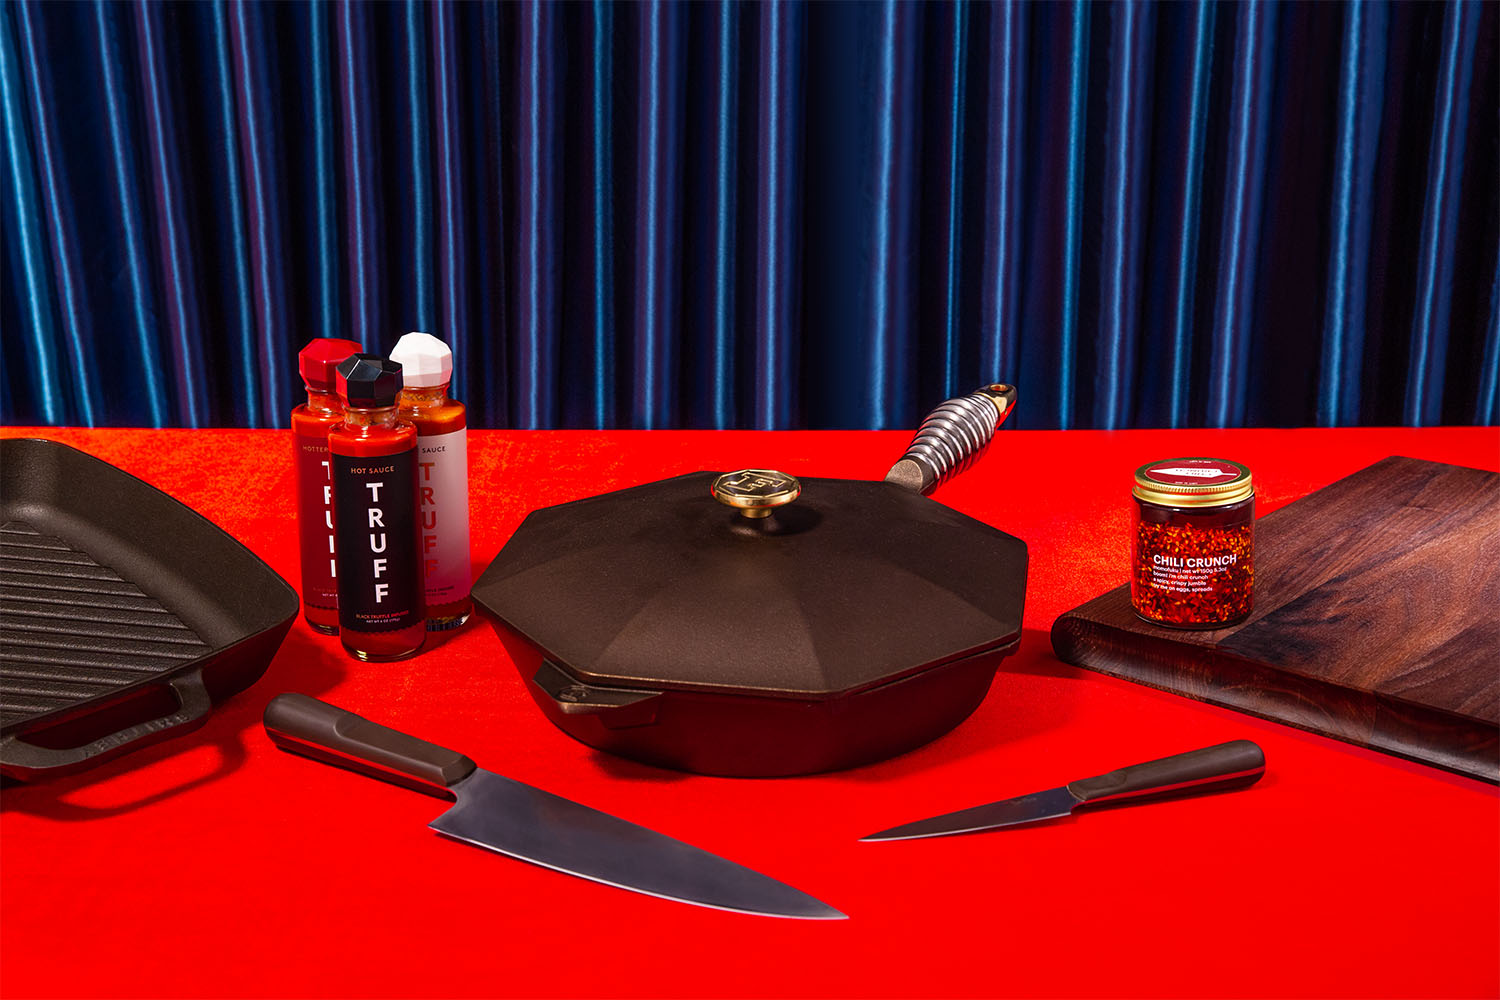 truff hot sauces, chili crisp, cast iron cookware and a knife and cutting board set